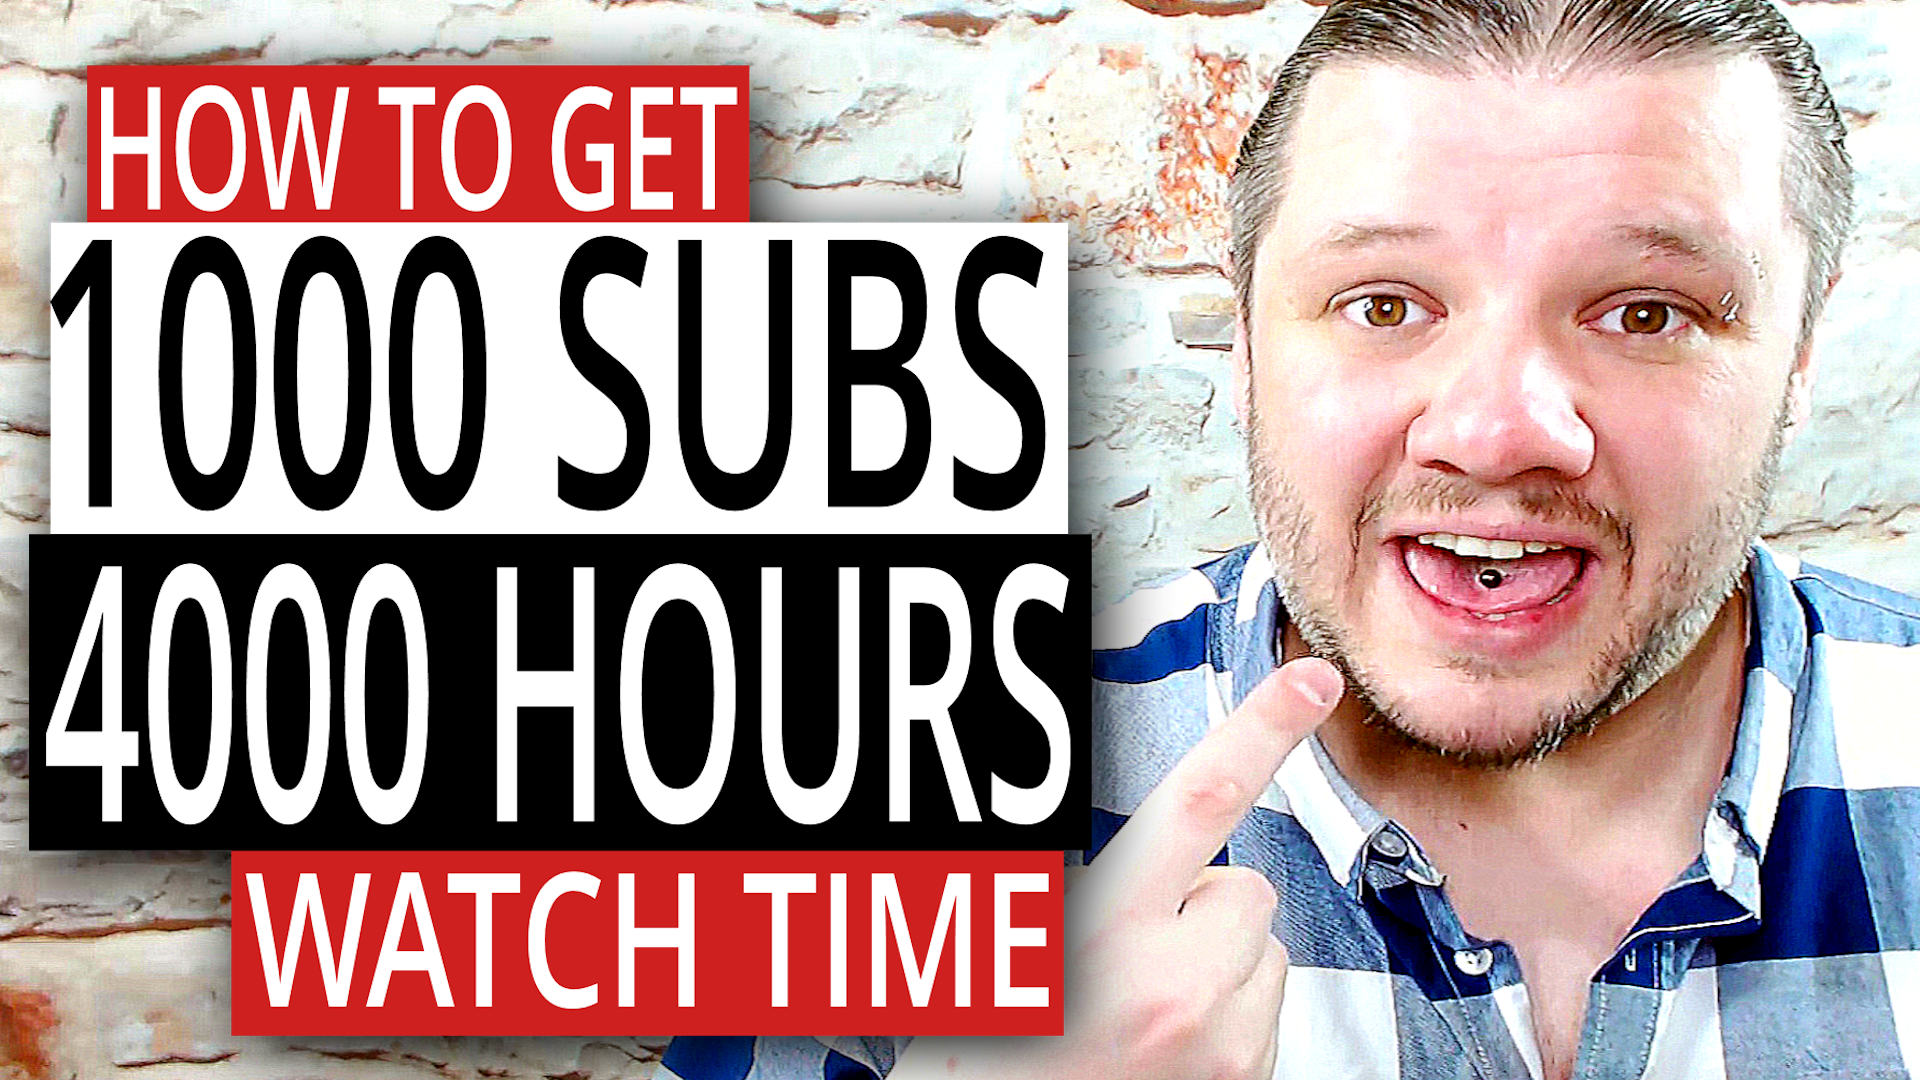 alan spicer,How To Get 1000 Subscribers and 4000 Hours Watch Time,How To Get 1000 Subscribers and 4000 Hours,How To Get 1000 Subscribers and 4000 Watch Time Hours,How To Get 4000 Hours Watch Time,How To Get 1K Subscribers and 4K Hours Watch Time,How To Get 1K Subs and 4K Hours Watch Time,youtube partnership programme,partnership programme,new youtube partnership programme,Monetize Your Channel on YouTube in 2018,Monetize Your Channel on YouTube,1000 subs 4000 hours